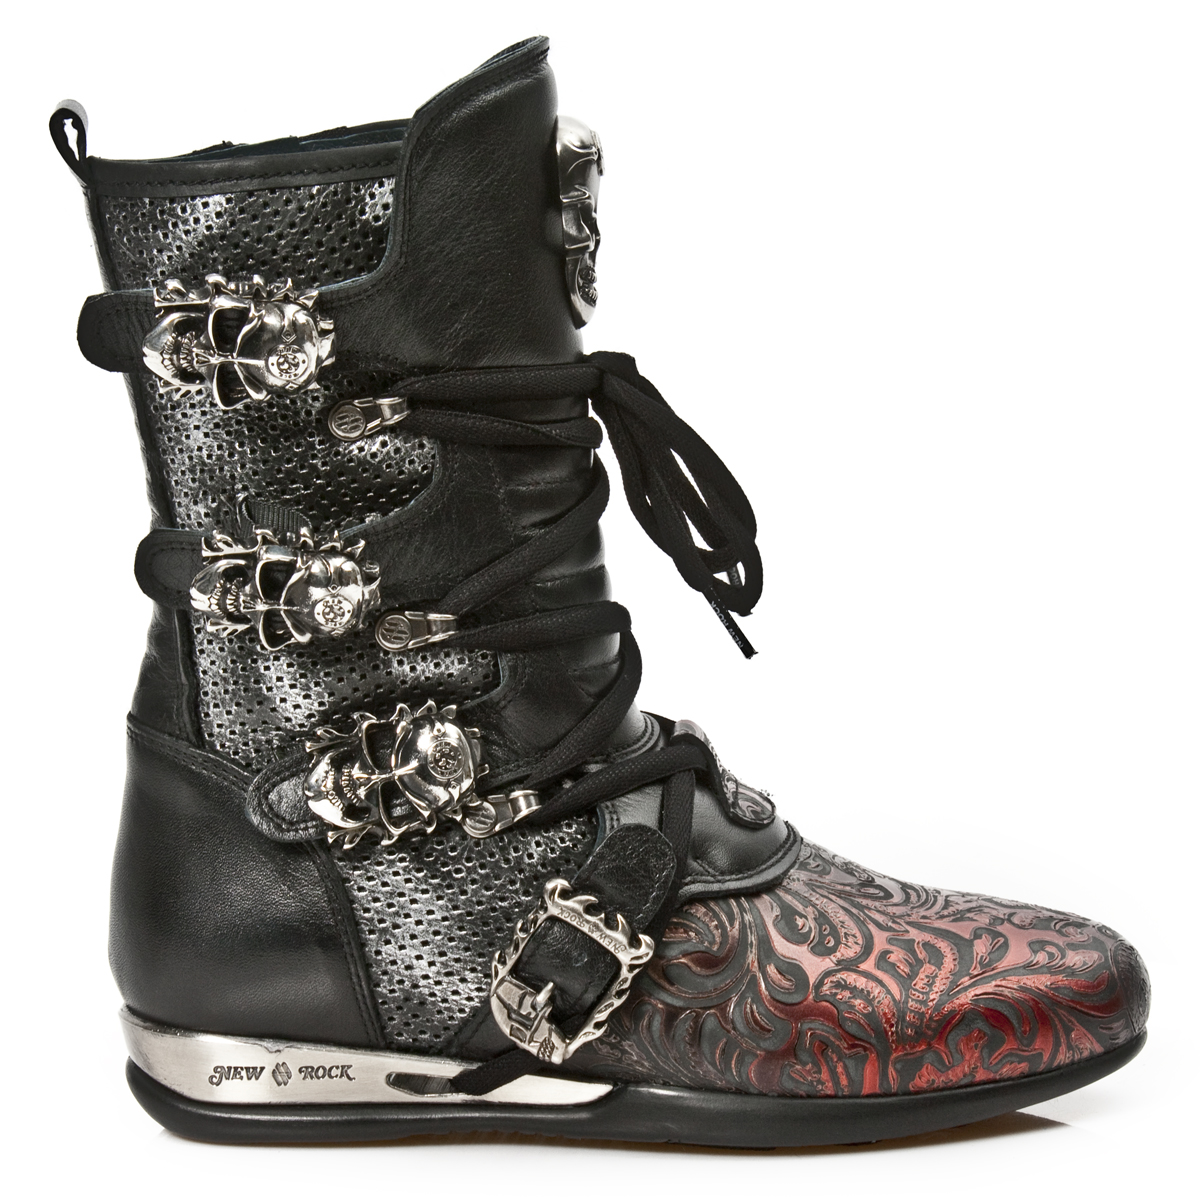 black red leather hybrid boots w skull buckles may take up to 45 50 days to receive. Black Bedroom Furniture Sets. Home Design Ideas